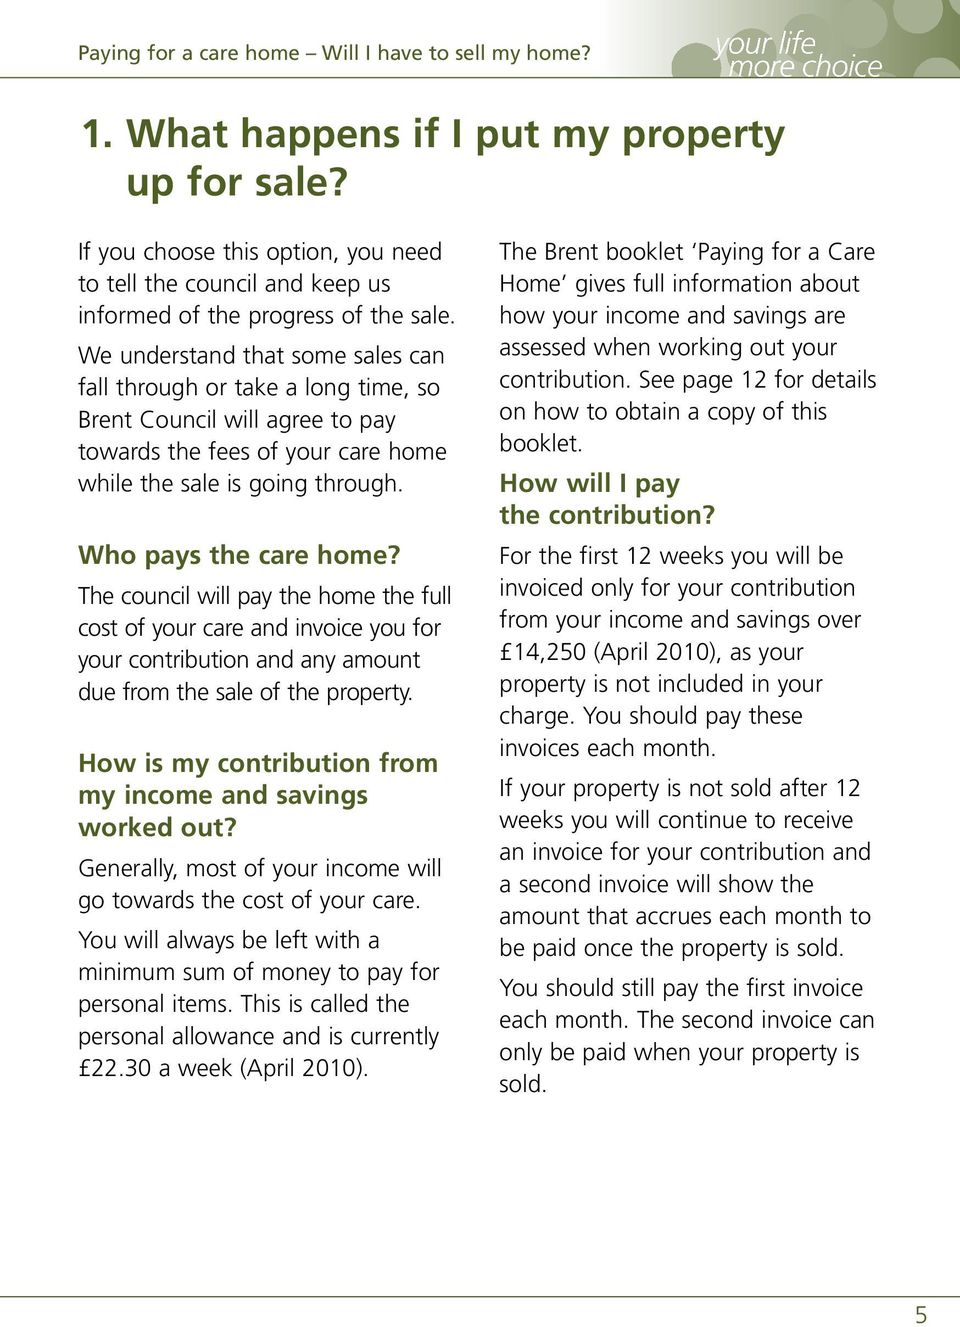 The council will pay the home the full cost of your care and invoice you for your contribution and any amount due from the sale of the property.